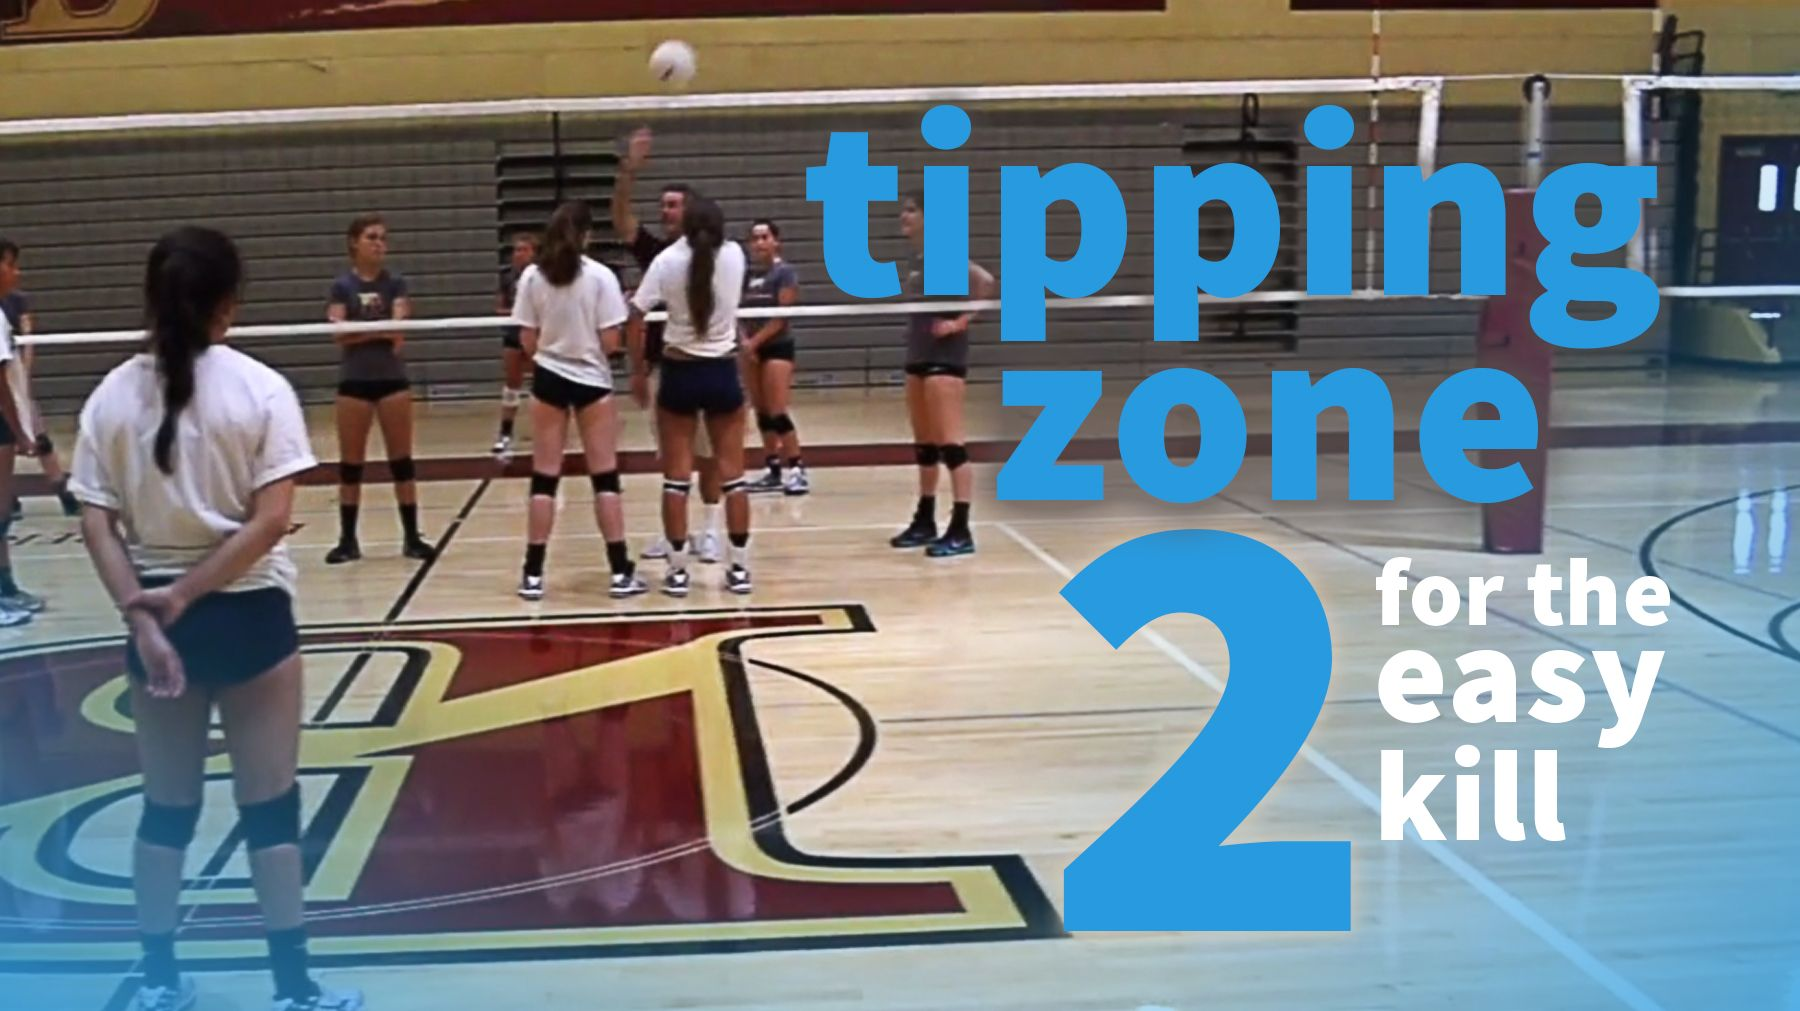 Strategy Tipping To Zone 2 Can Produce An Easy Kill With Images Coaching Volleyball Volleyball Training Volleyball Skills